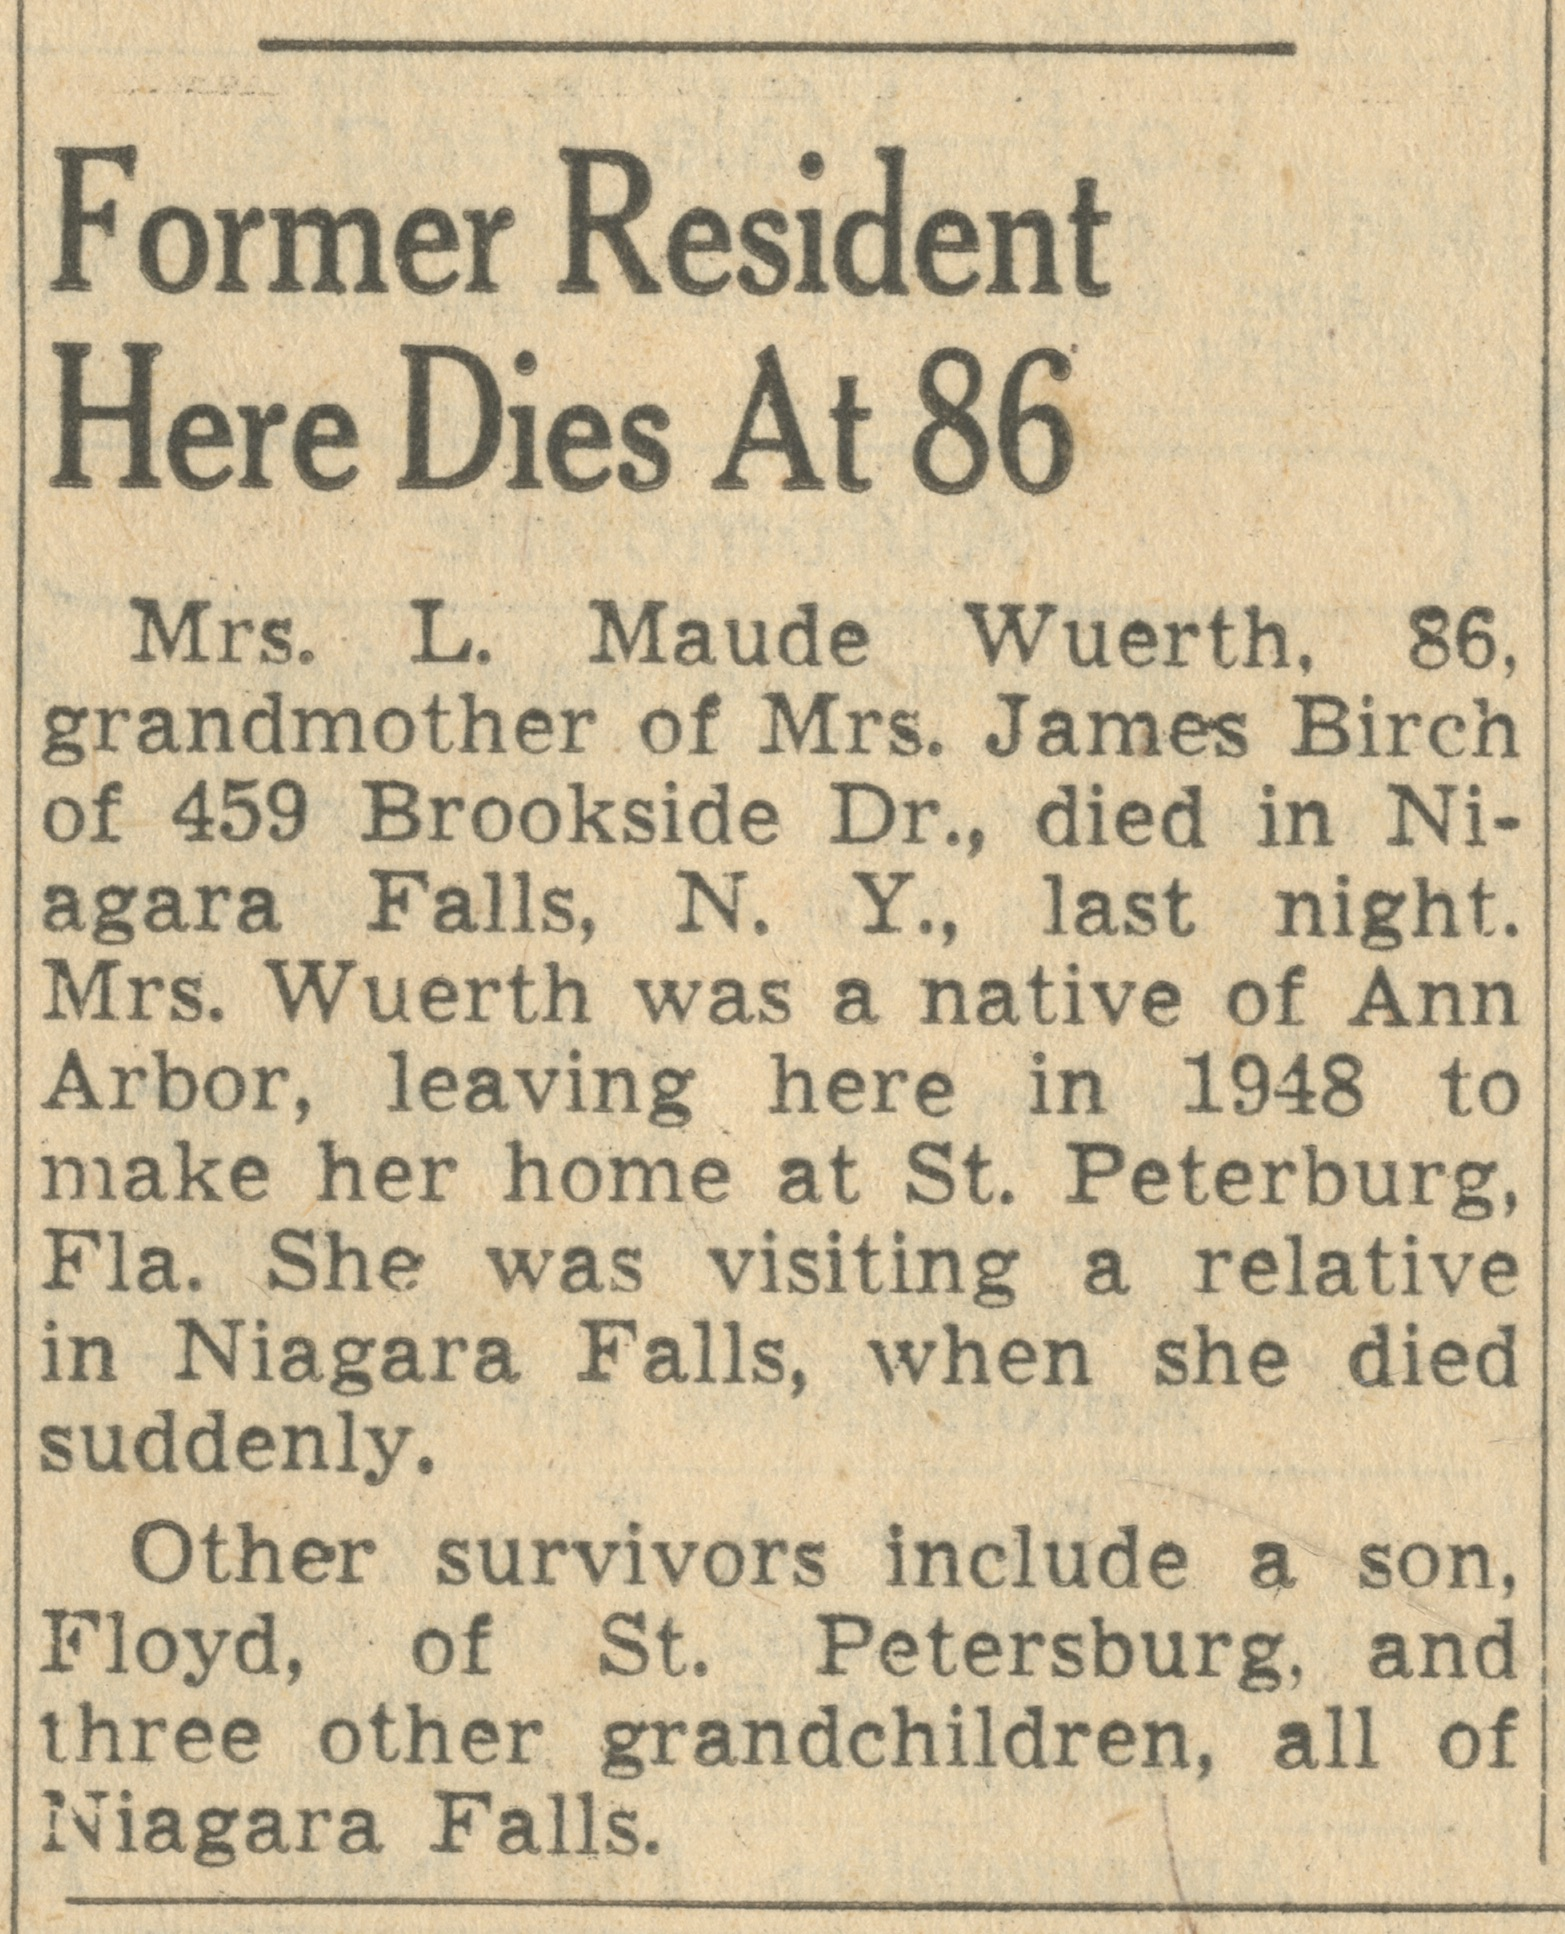 Former Resident Here Dies At 86 image